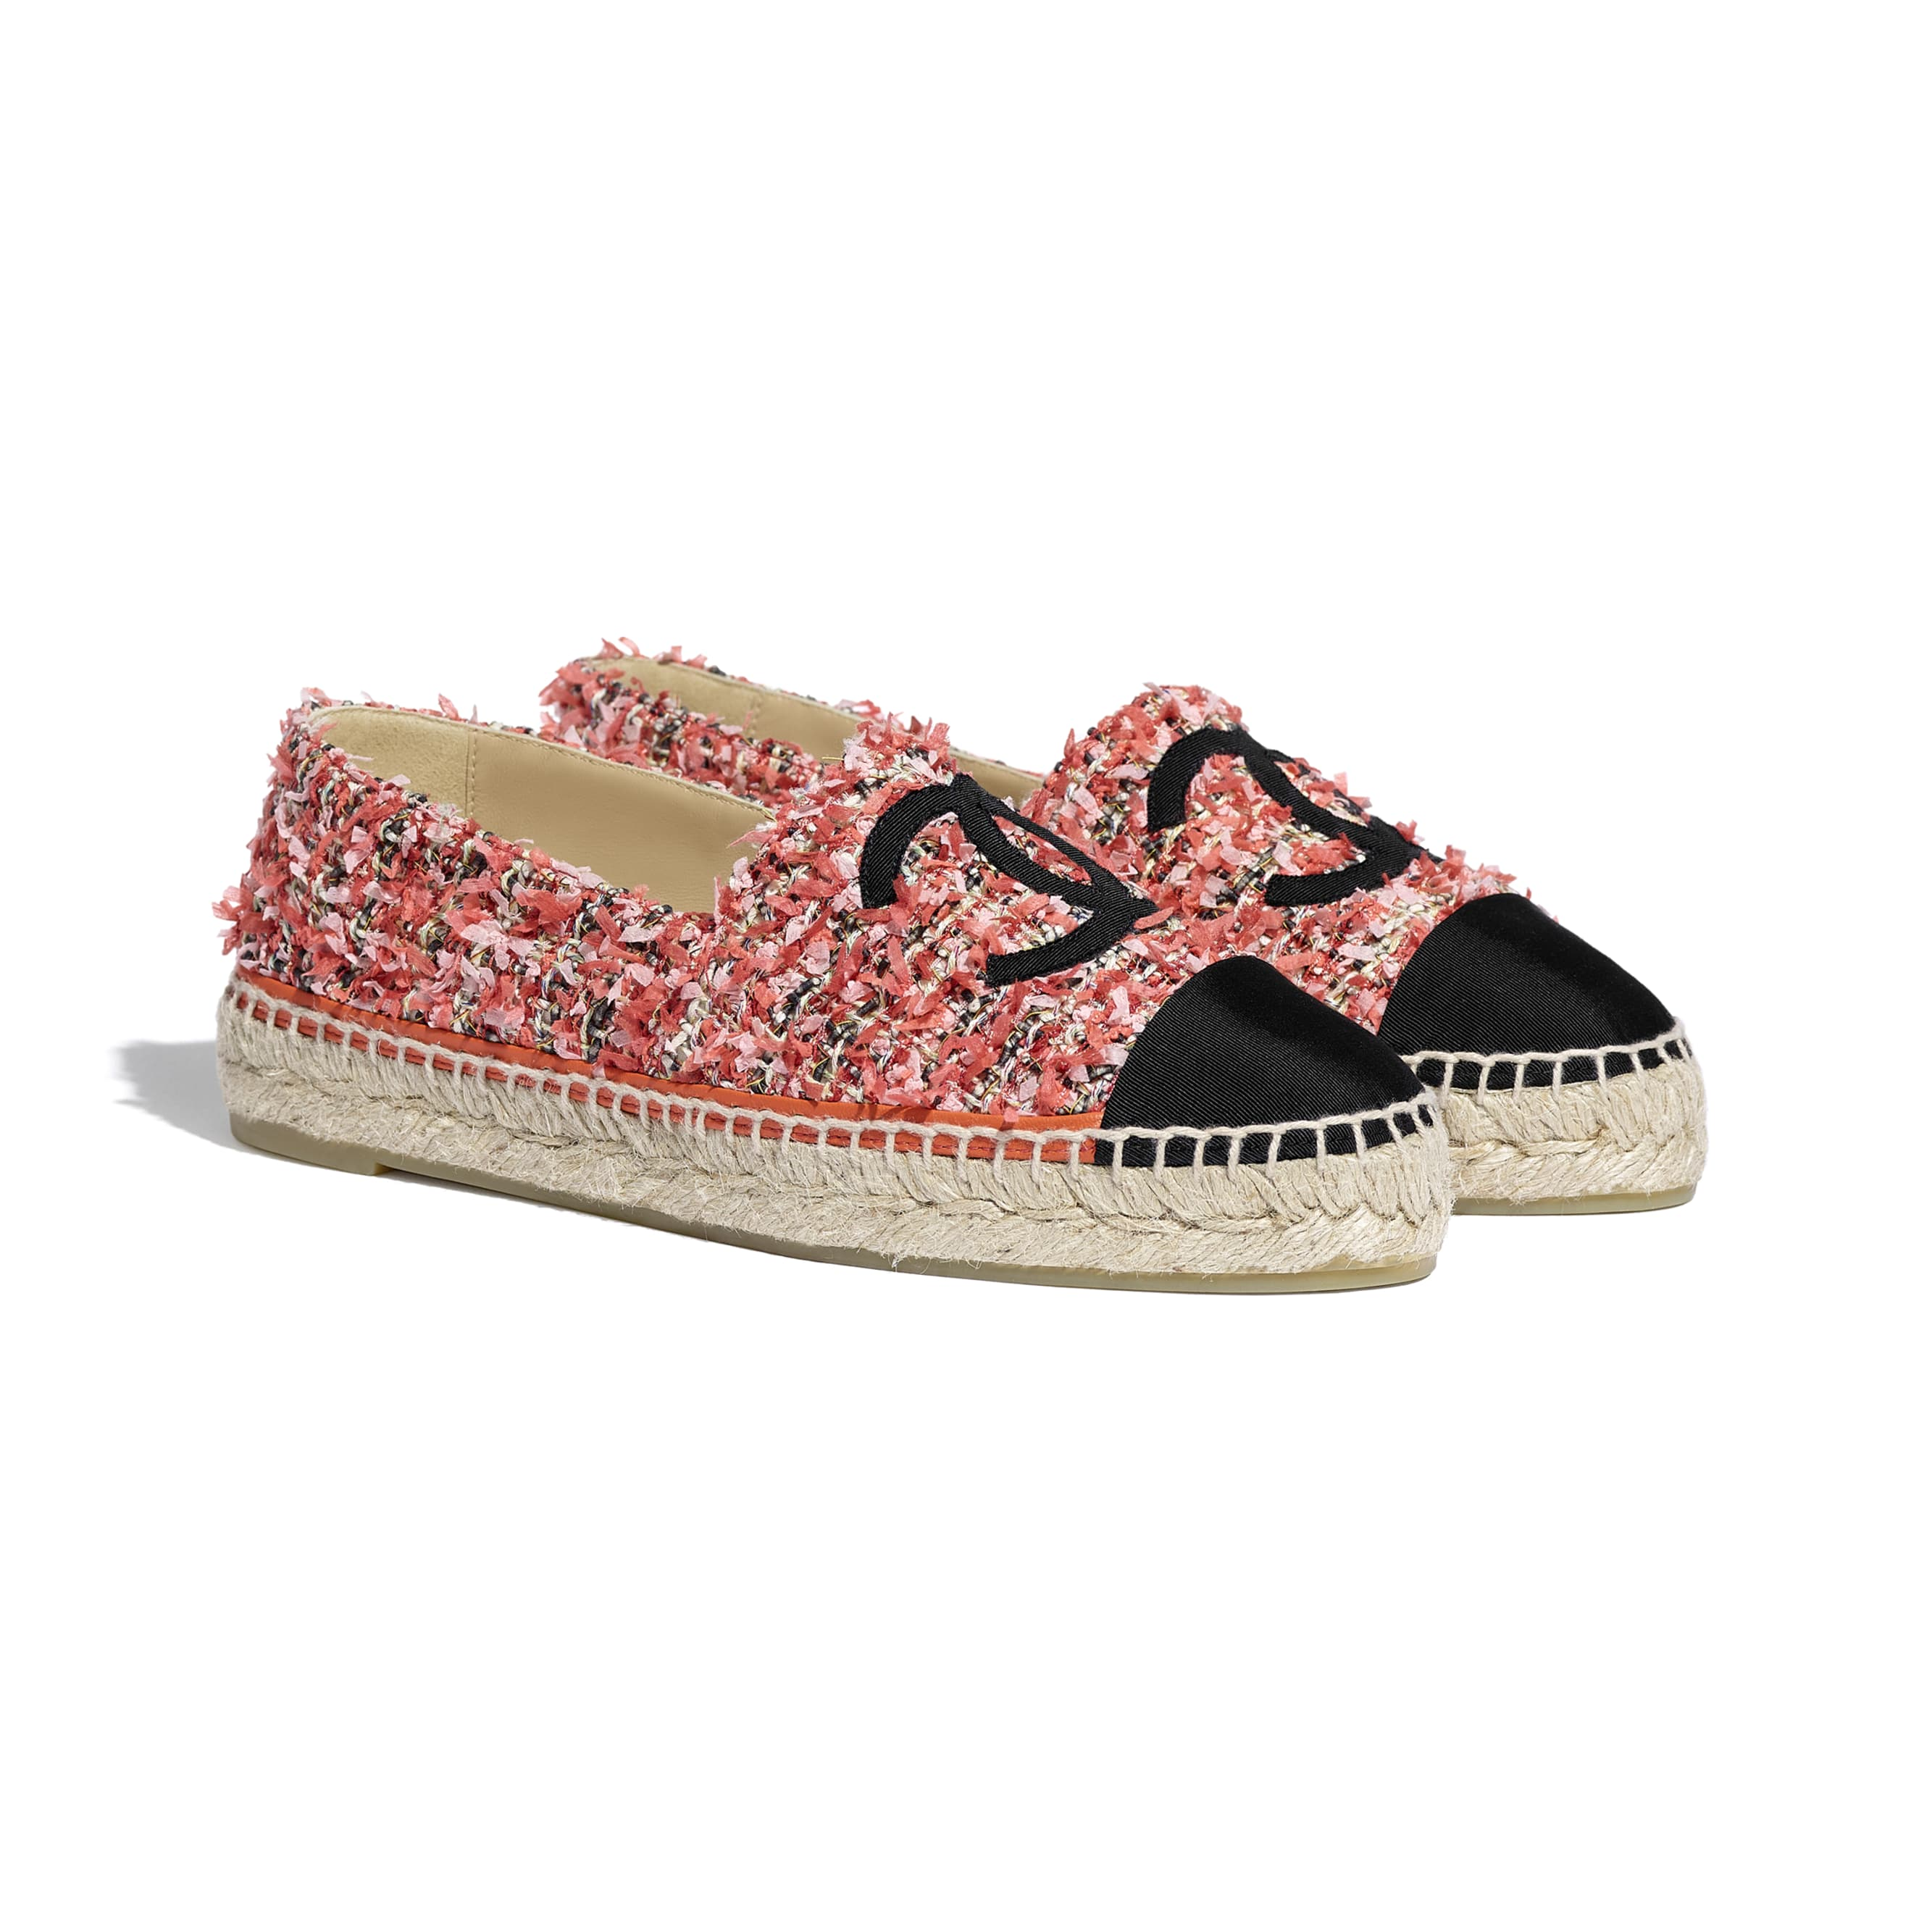 Espadrilles - Coral, Red, Pink & Black - Tweed & Grosgrain - CHANEL - Alternative view - see standard sized version